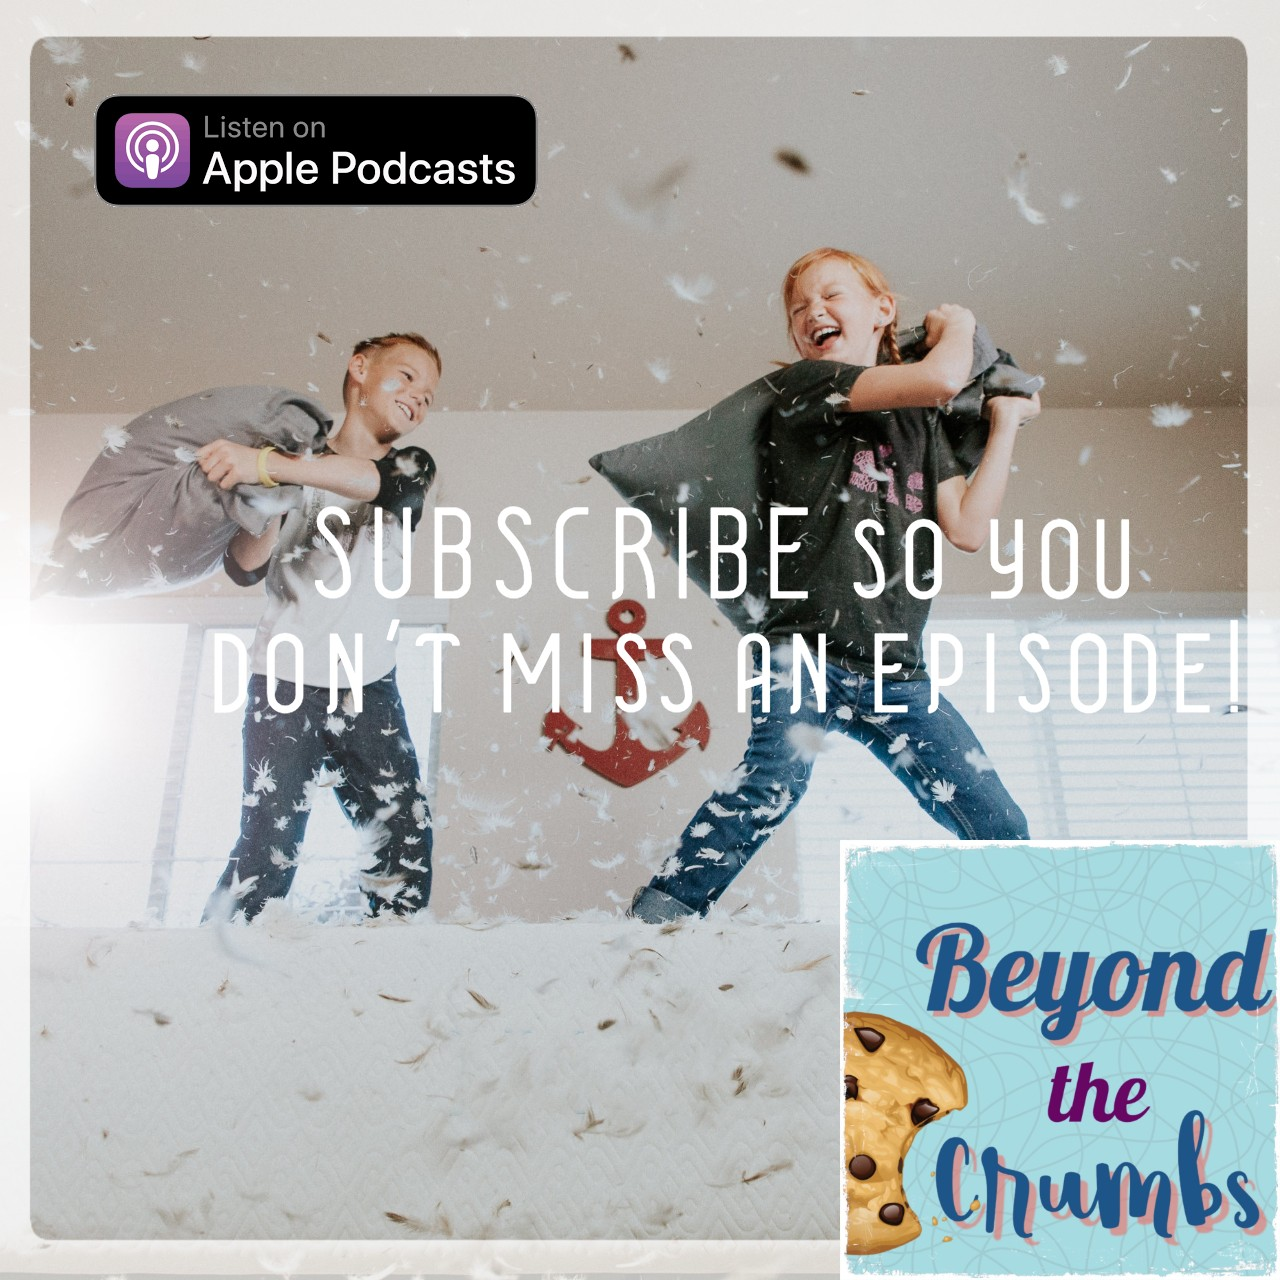 Listen to Beyond the Crumbs